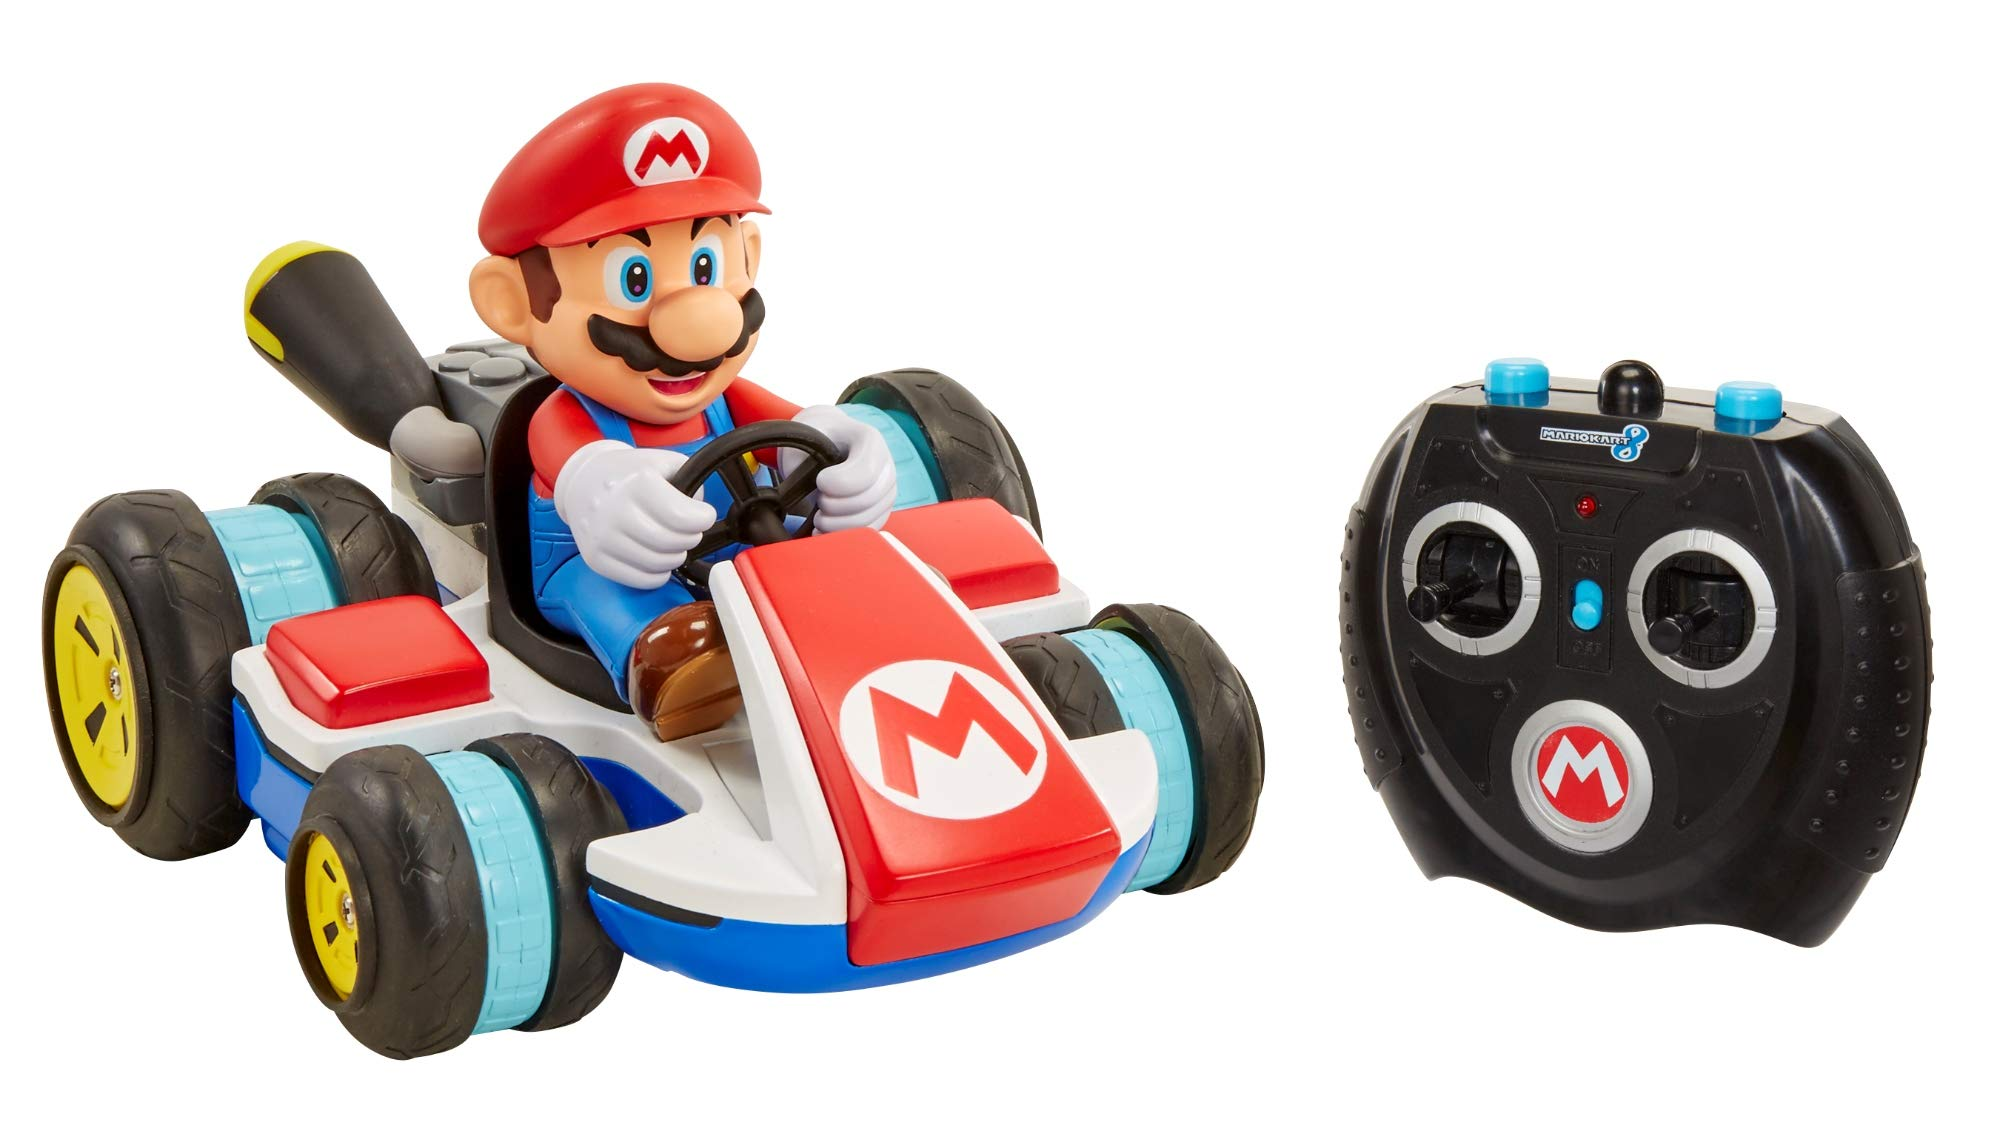 NINTENDO Super Mario Kart 8 Mario Anti-Gravity Mini RC Racer 2.4Ghz by Nintendo (Image #12)